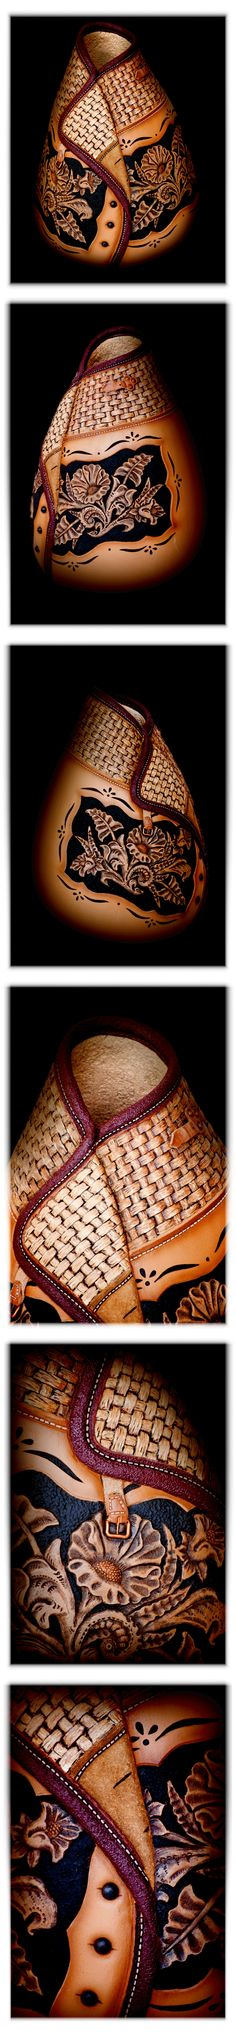 "YES!!! This is a GOURD!!! Amazing Gourd Art, ""Desperado"" by Jordan Straker. This piece is on display here at the farm! This is an amazing example of Gourd Craftsmanship. We can't thank Jordan enough for carving this for us!"